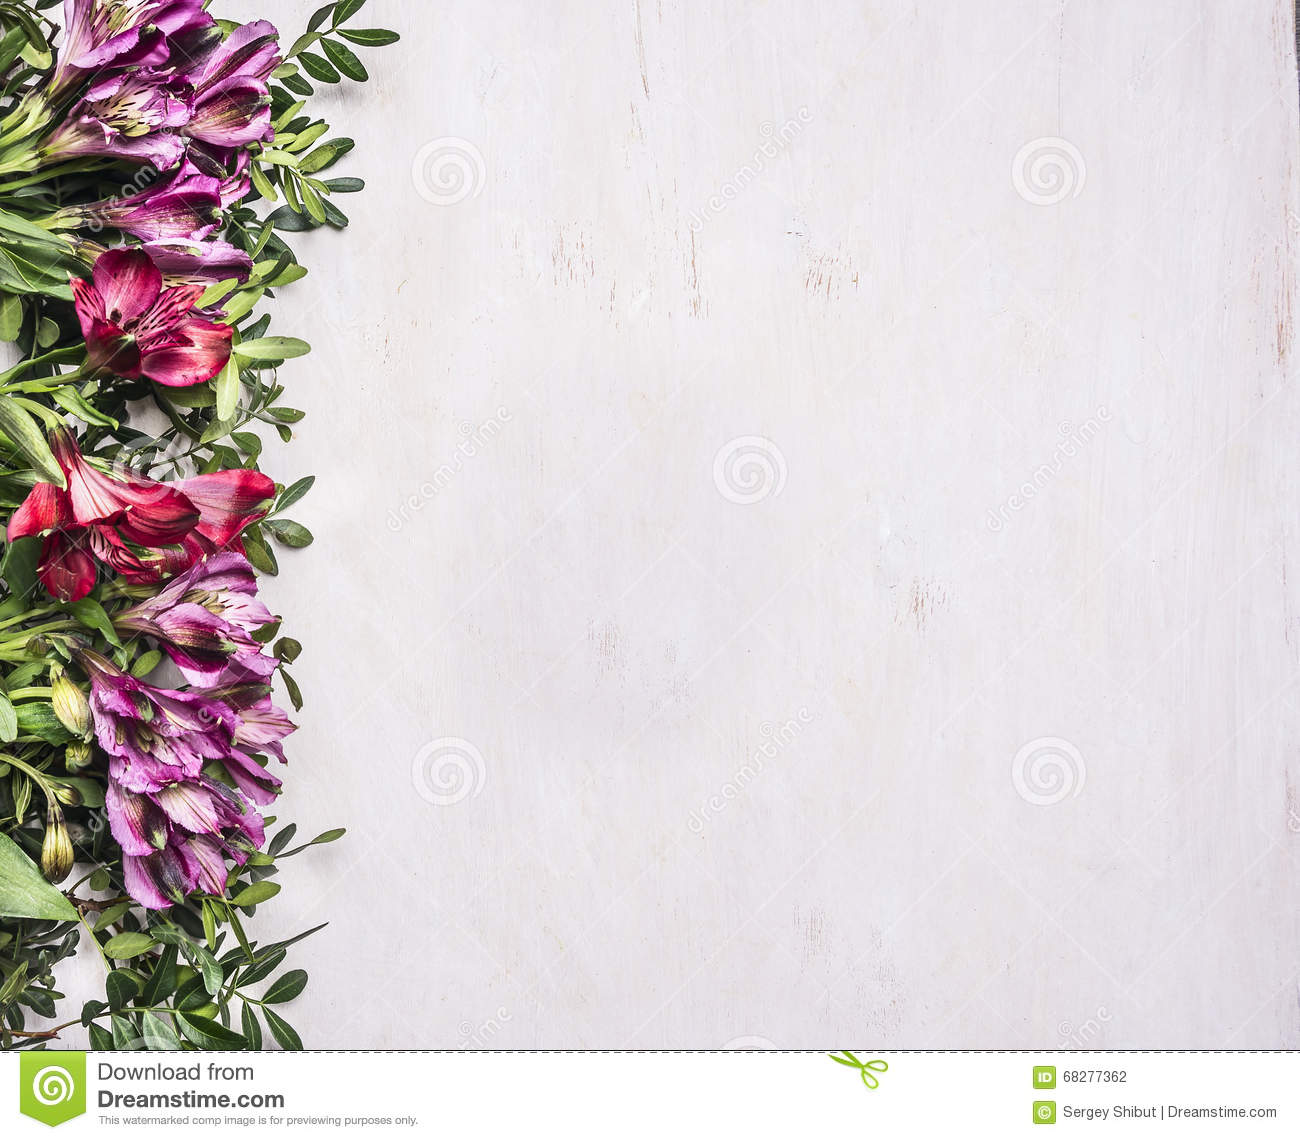 Beautiful Freesya Multicolored Flowers With Green Leaves Border Place For Text Wooden Rustic Background Top